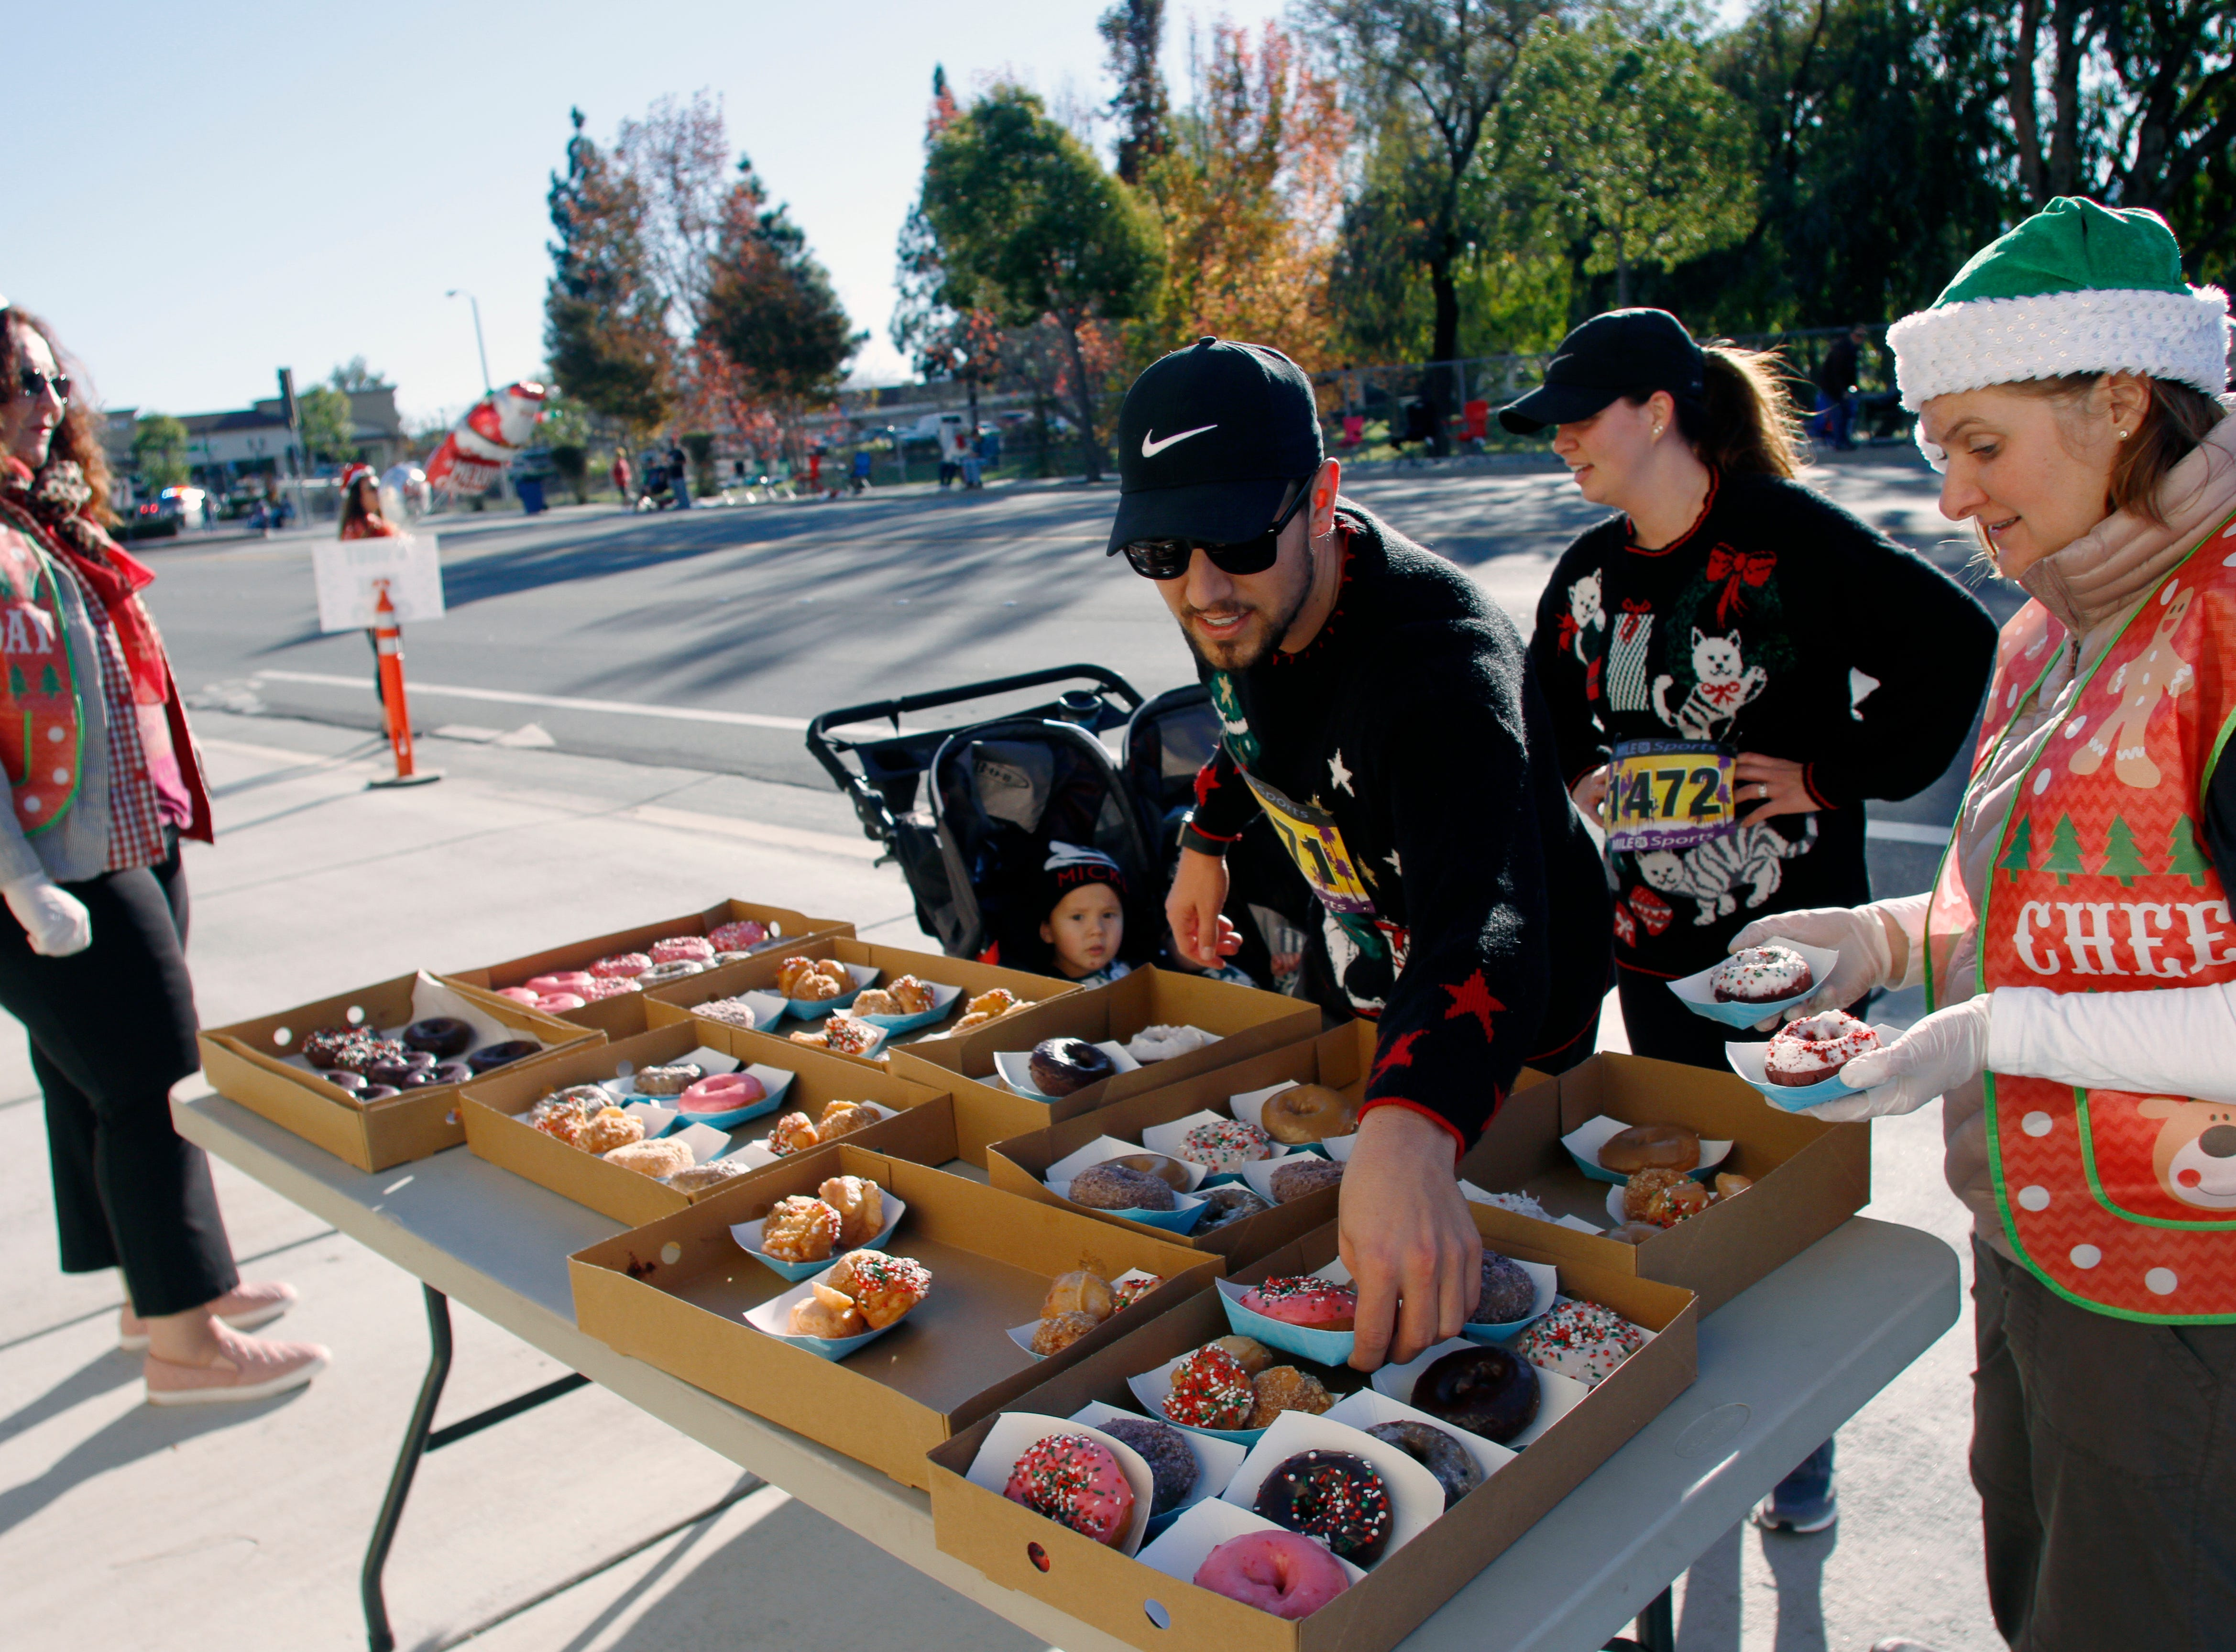 Run participants Josh and Lexi Warren grab doughnuts at an aid station near Rolling Pin Donuts as volunteer Heather Roberts hands out the treats on Saturday during Christmas festivities in Camarillo that included a parade and more.